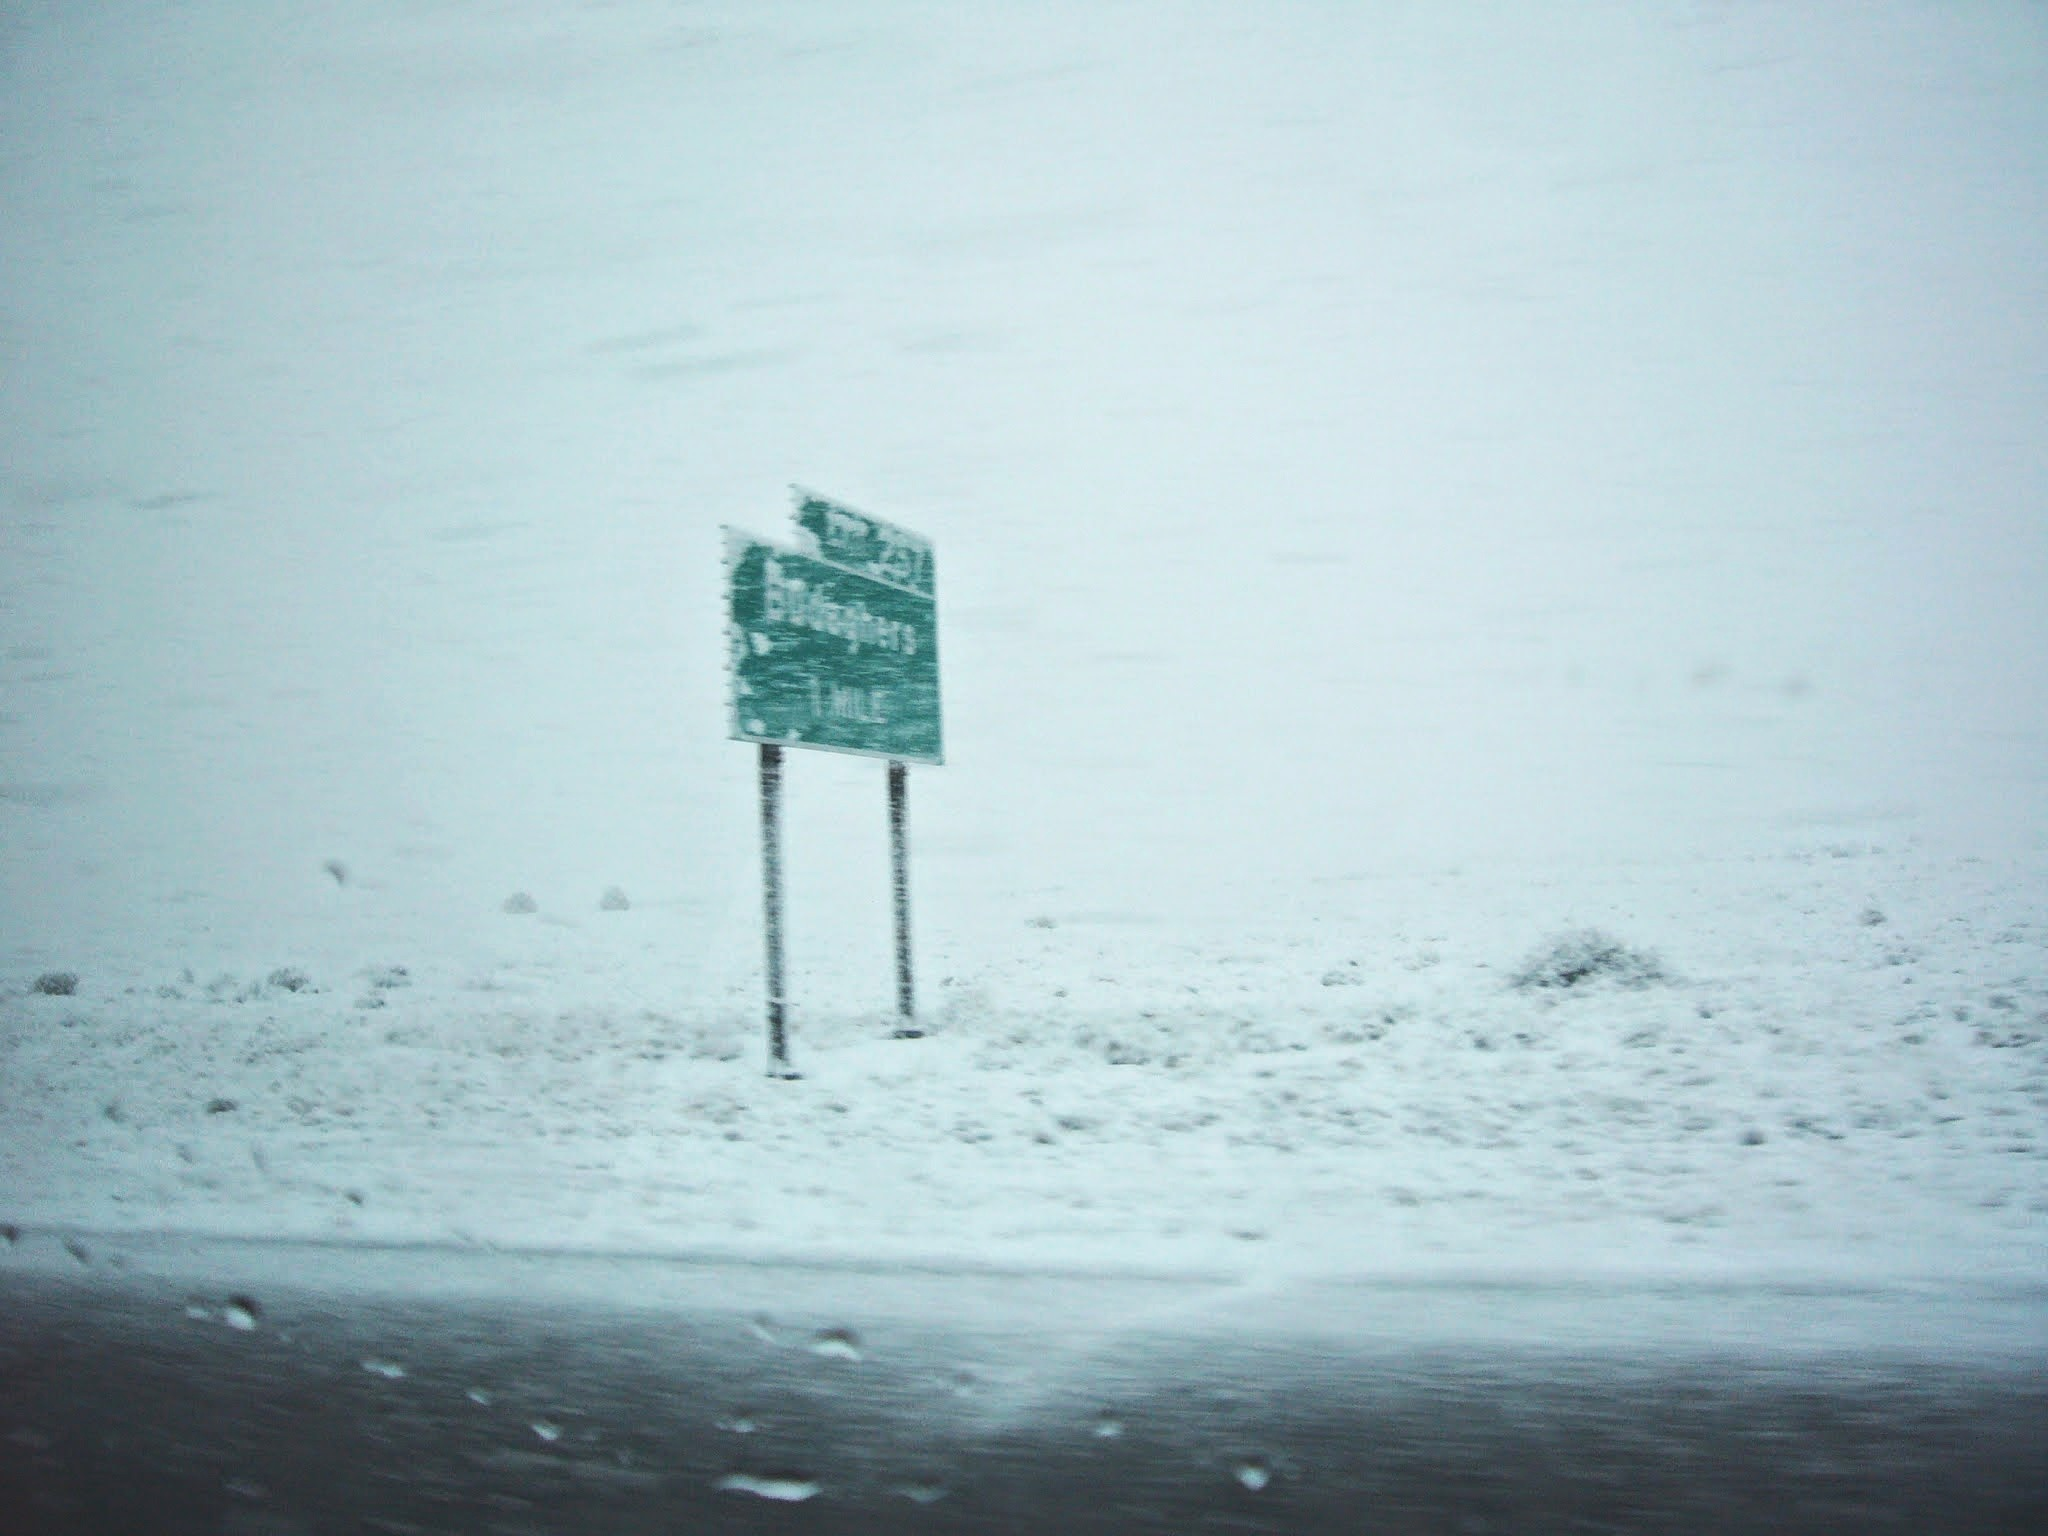 Surprise blizzard near Santa Fe in March!